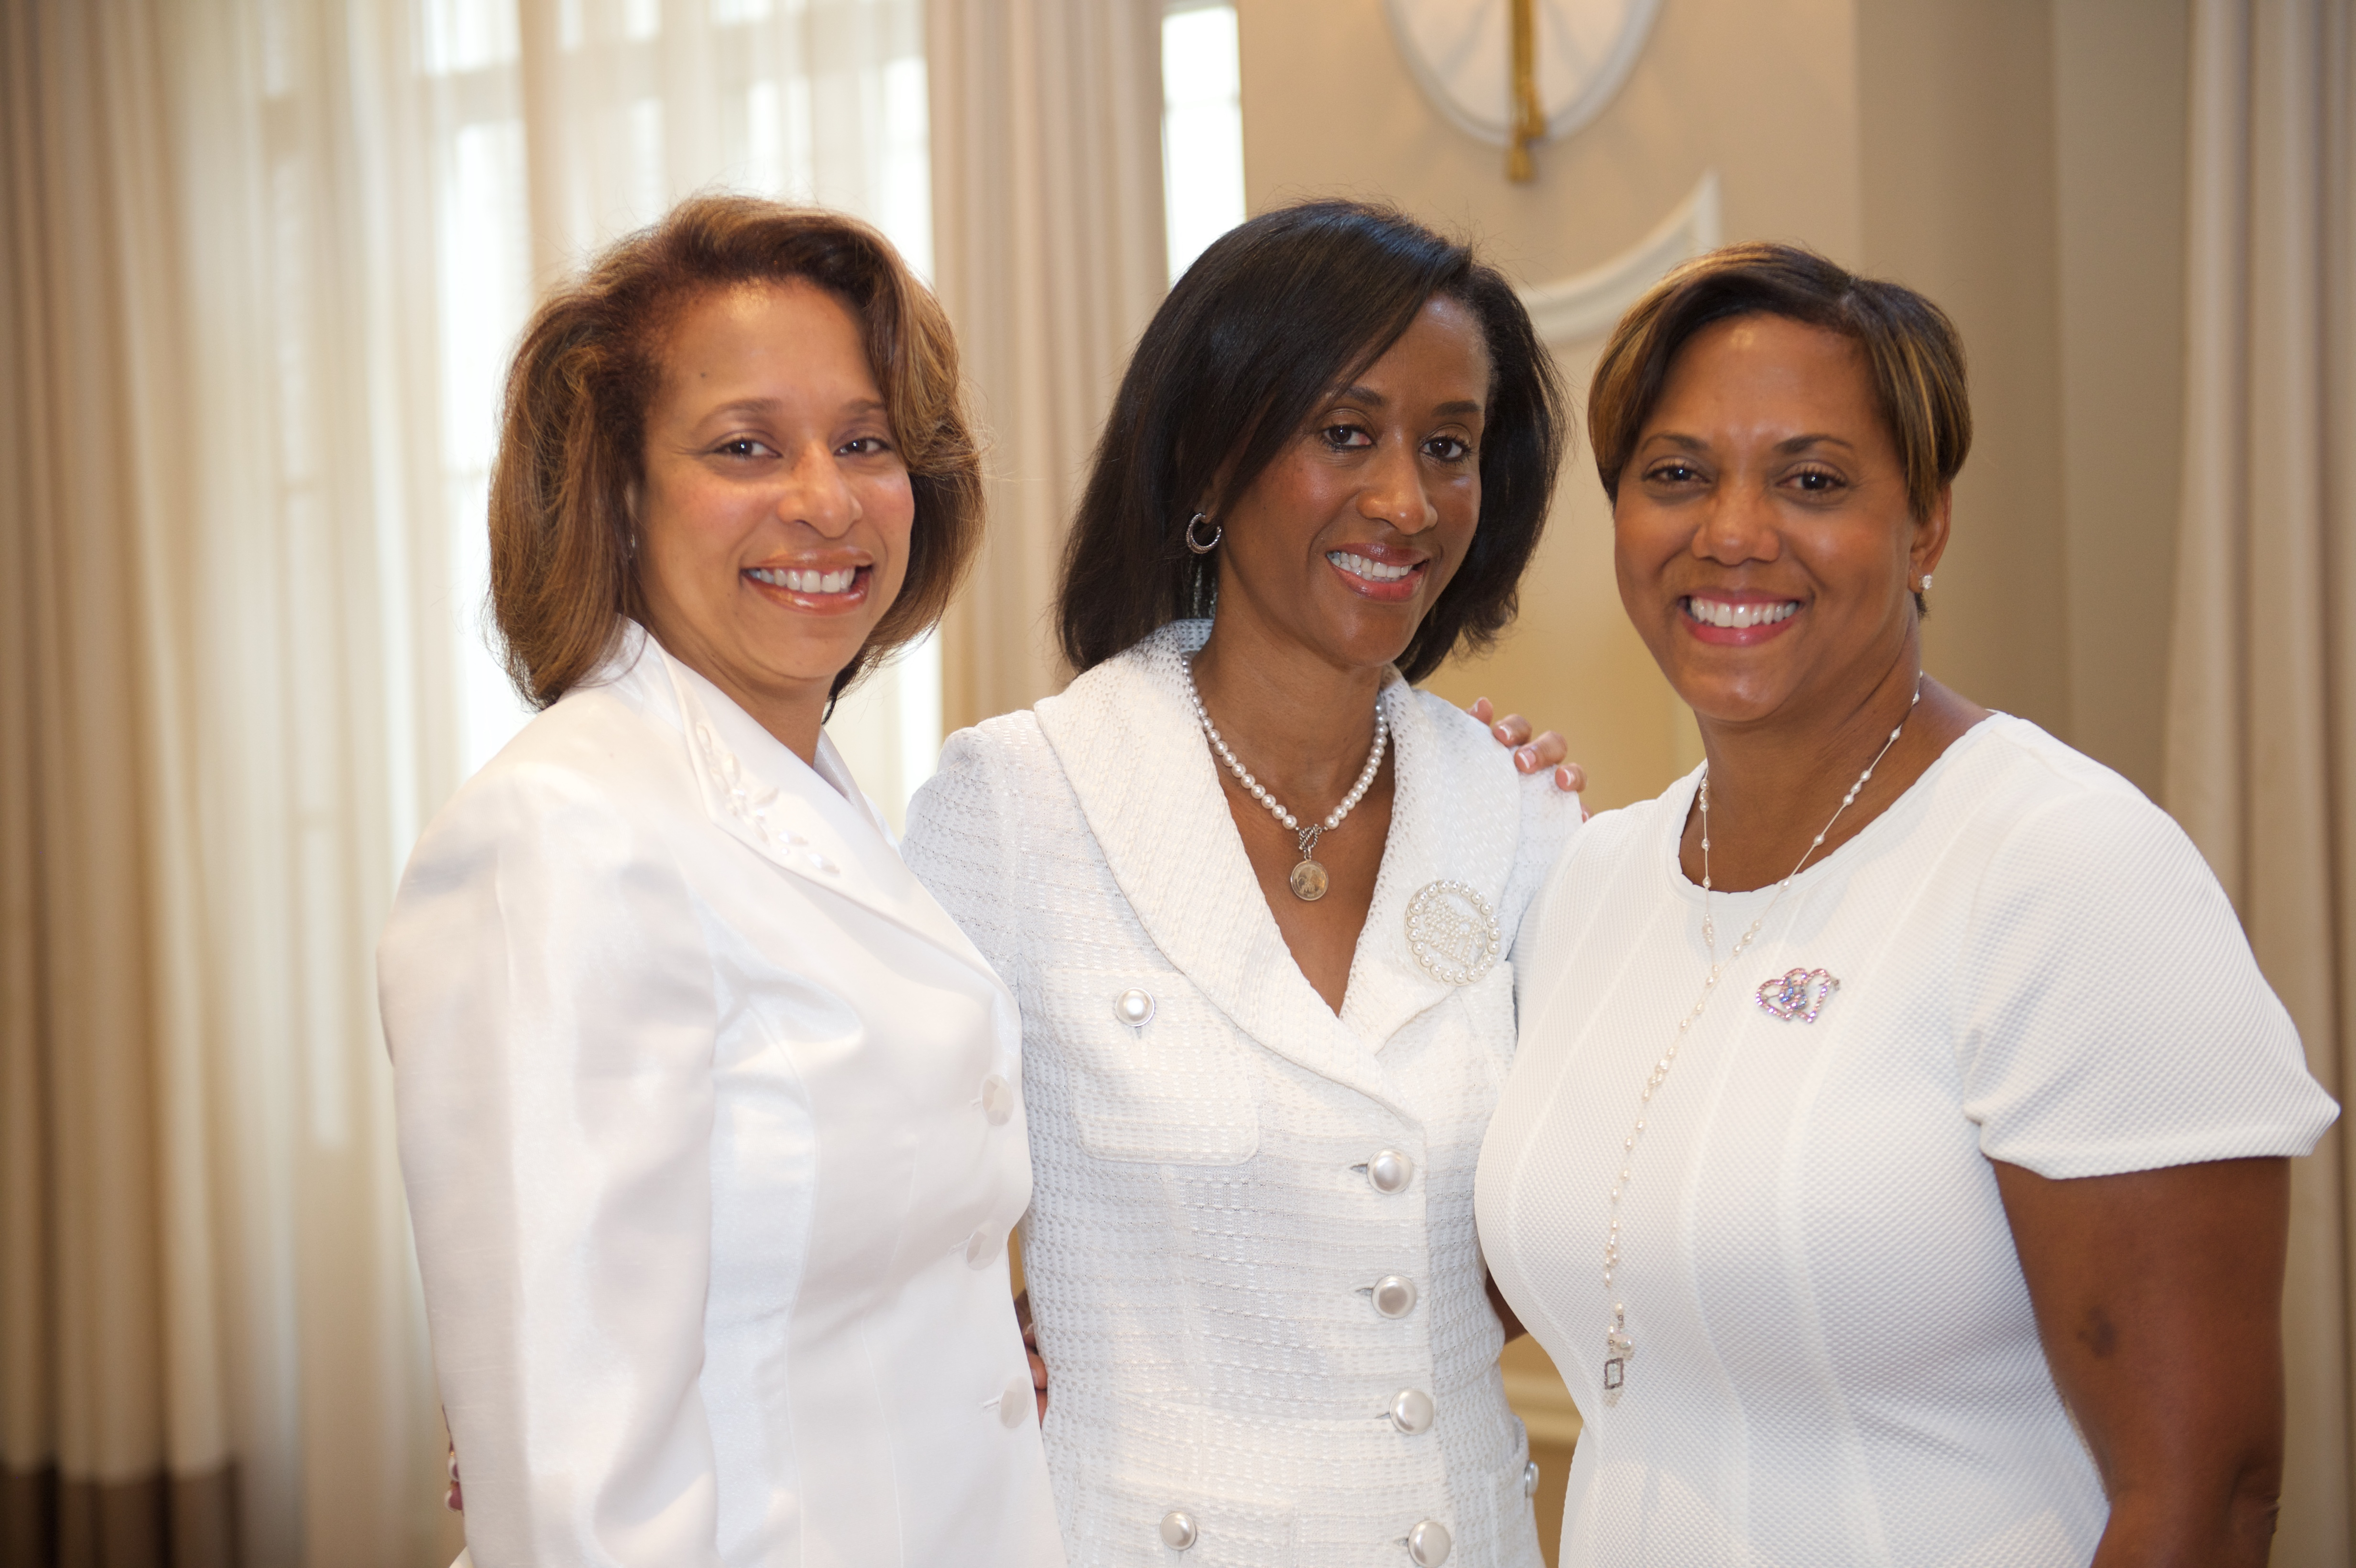 Angela Johnson, NP Tammy King, Pres Hillary Dunson